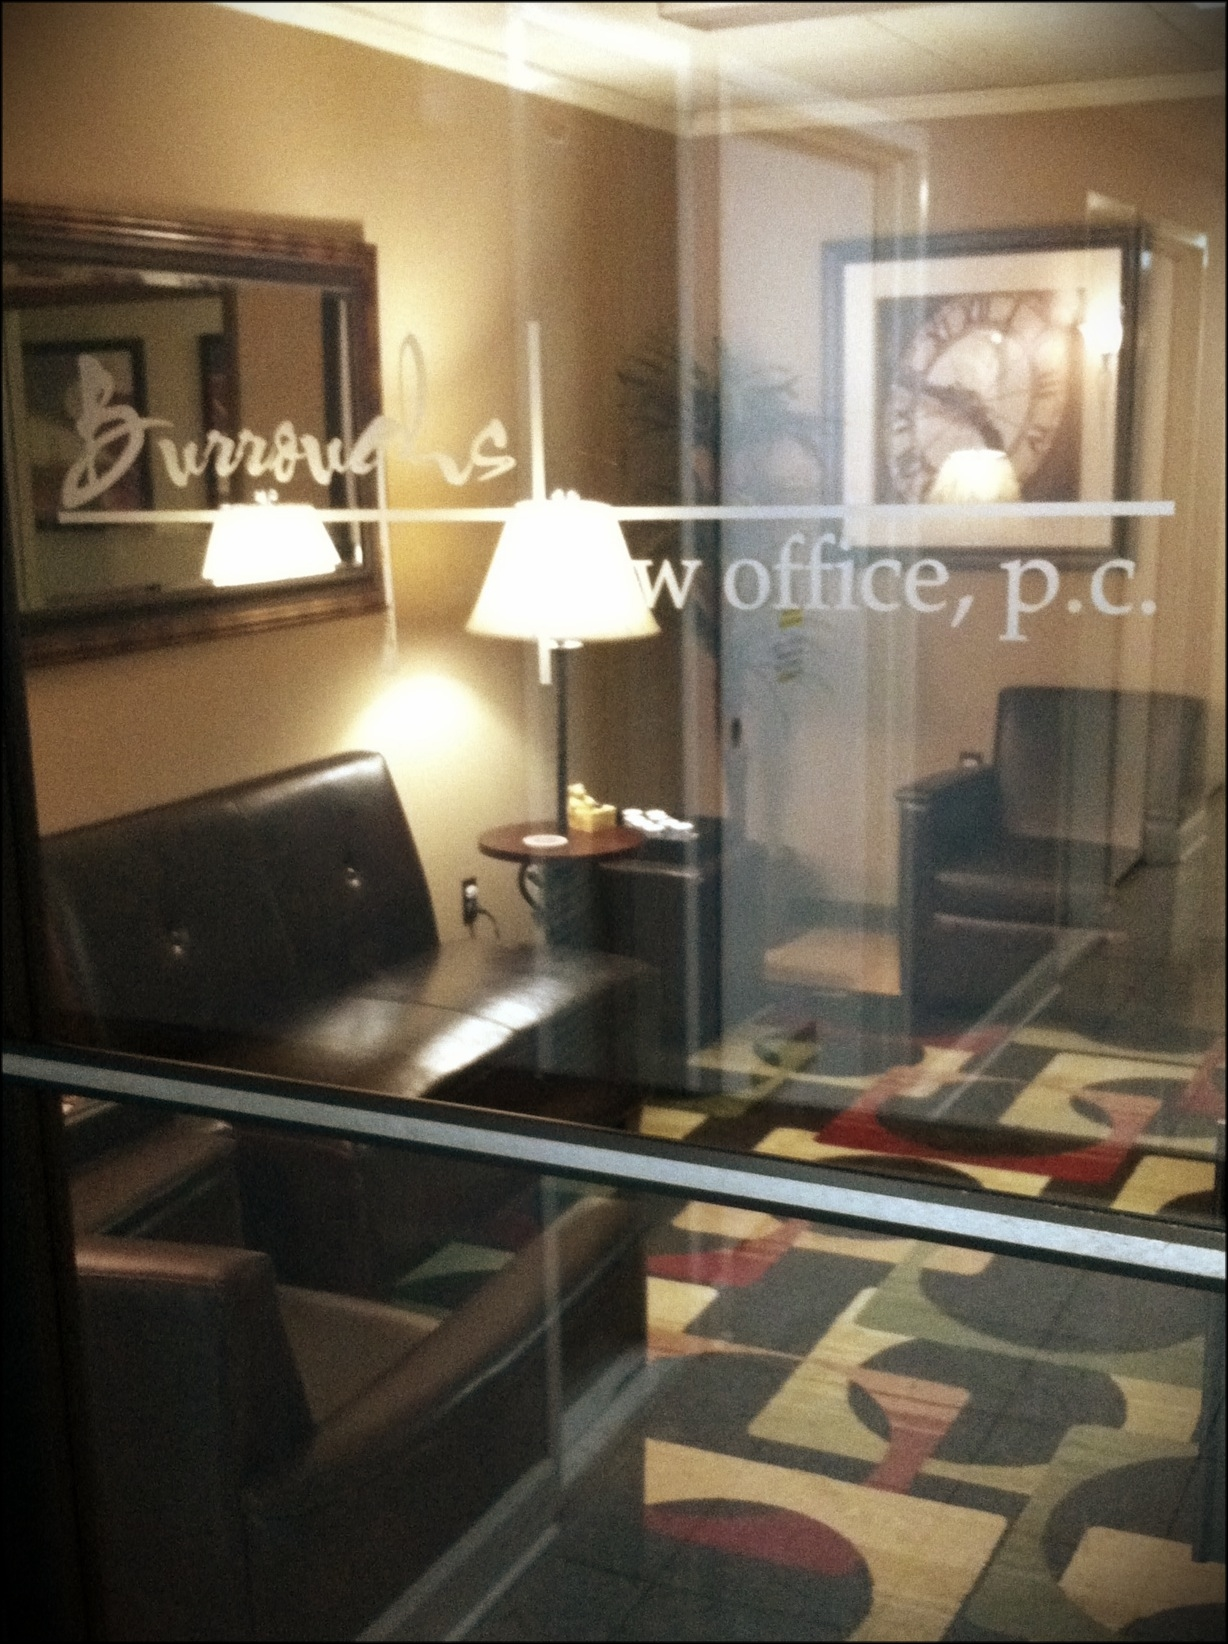 Burroughs Law Office, Pc